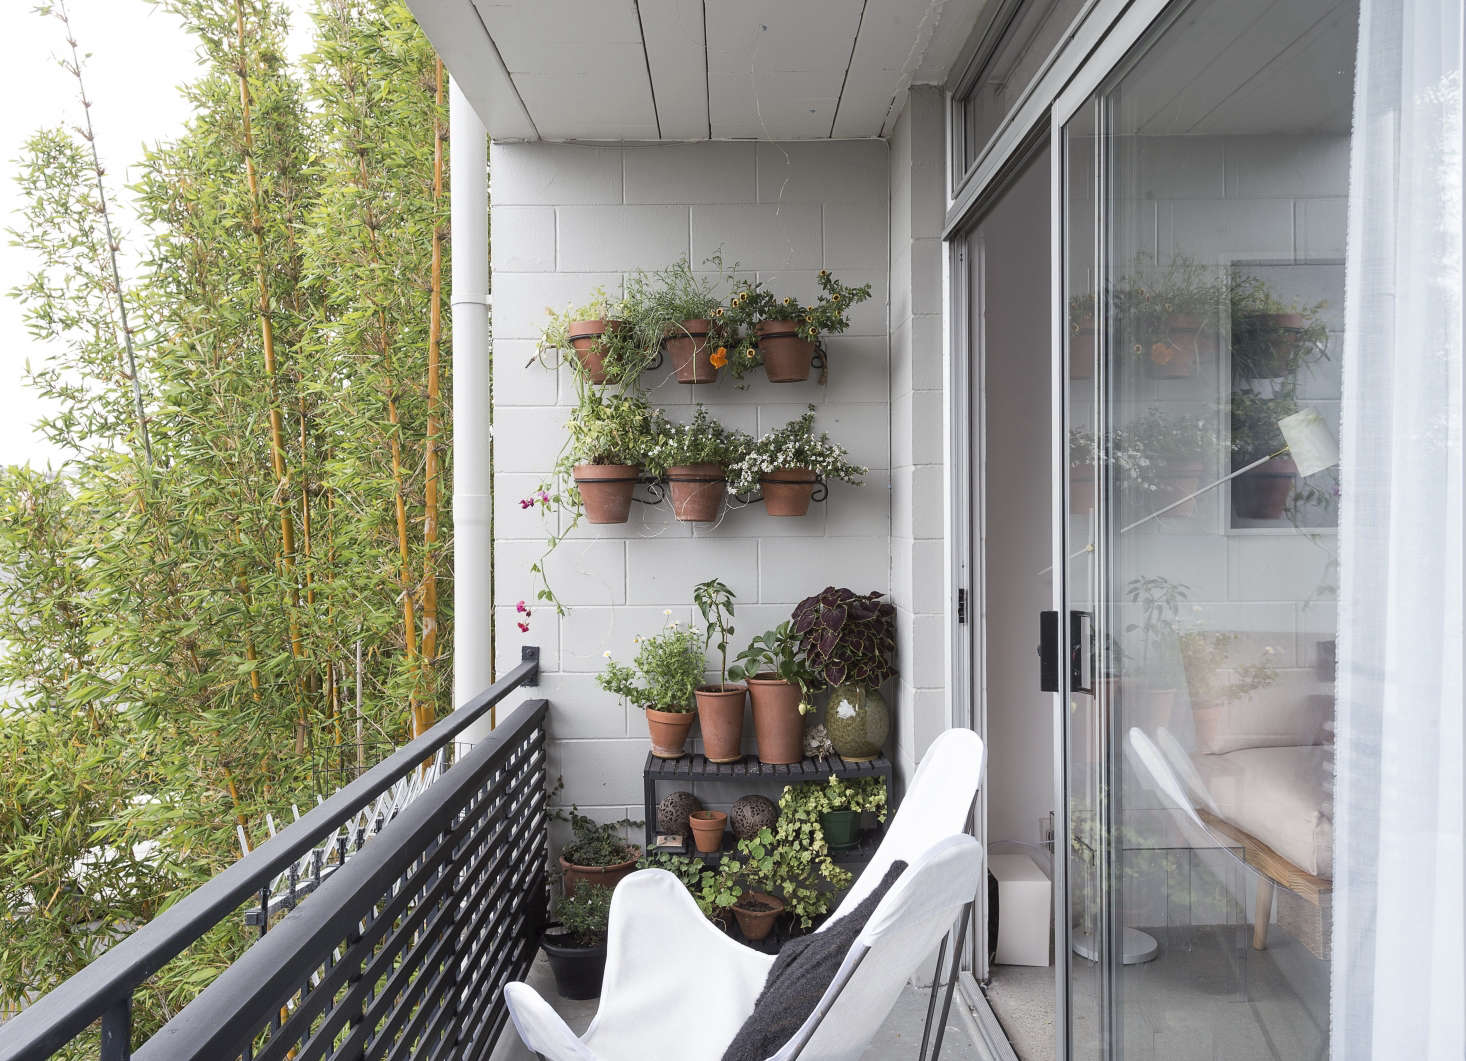 On the 75-square-foot balcony, Spath added white butterfly chairs and a vertical garden of sorts. We offer tips to Steal This Look on Gardenista today. For more ideas, see Rental Garden Makeovers:  Best Budget Ideas for an Outdoor Space on Gardenista.